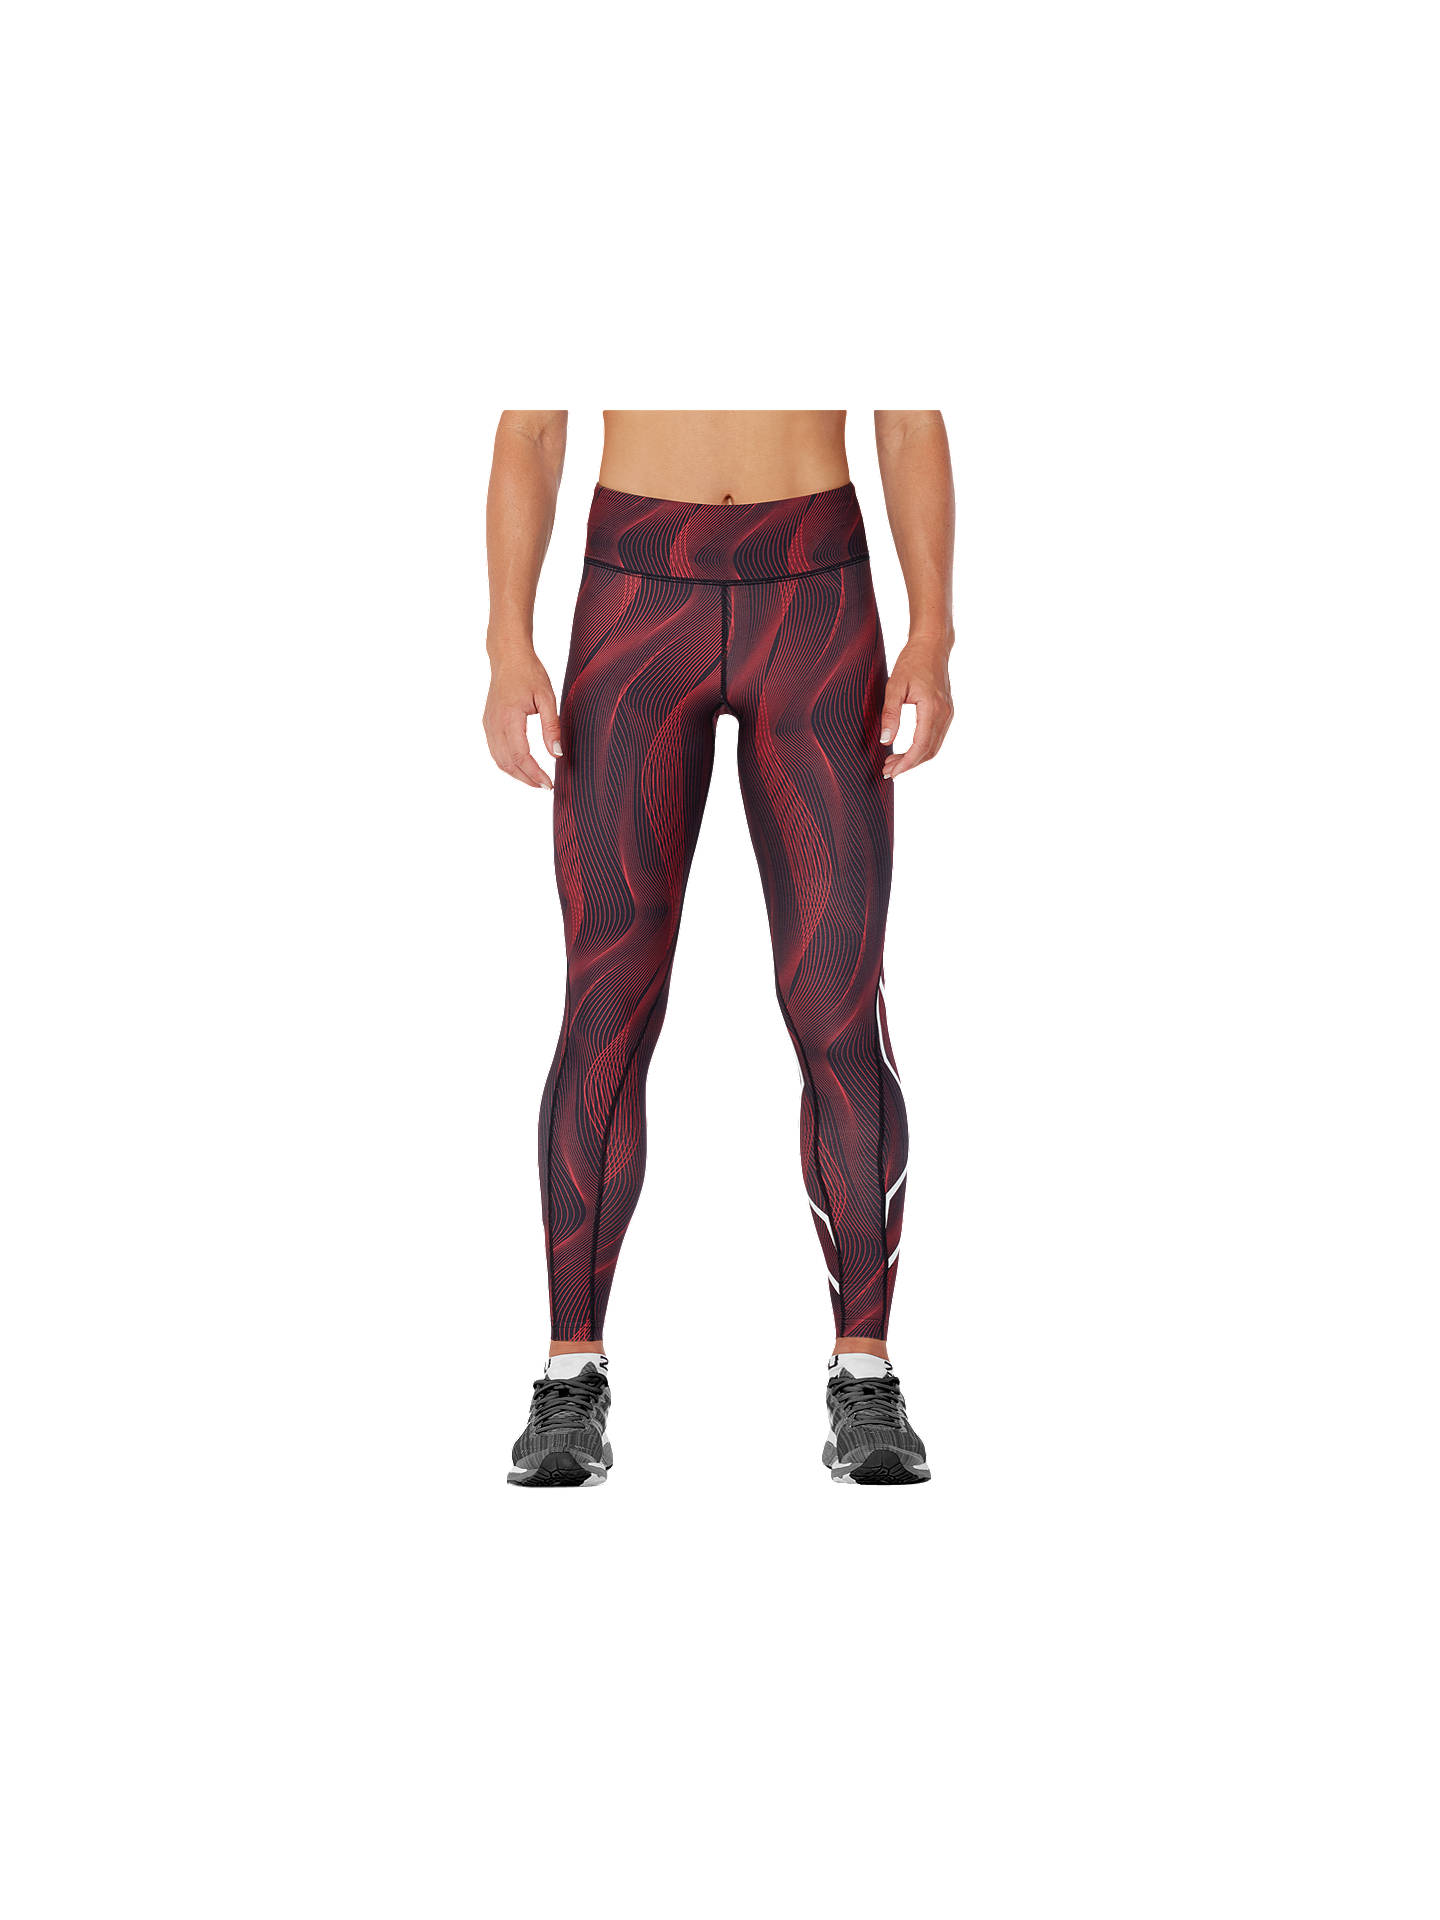 59ac486cf1 Buy 2XU Mid-Rise Print Compression Women's Tights, Tomato Vertical Curve,  XS Online ...